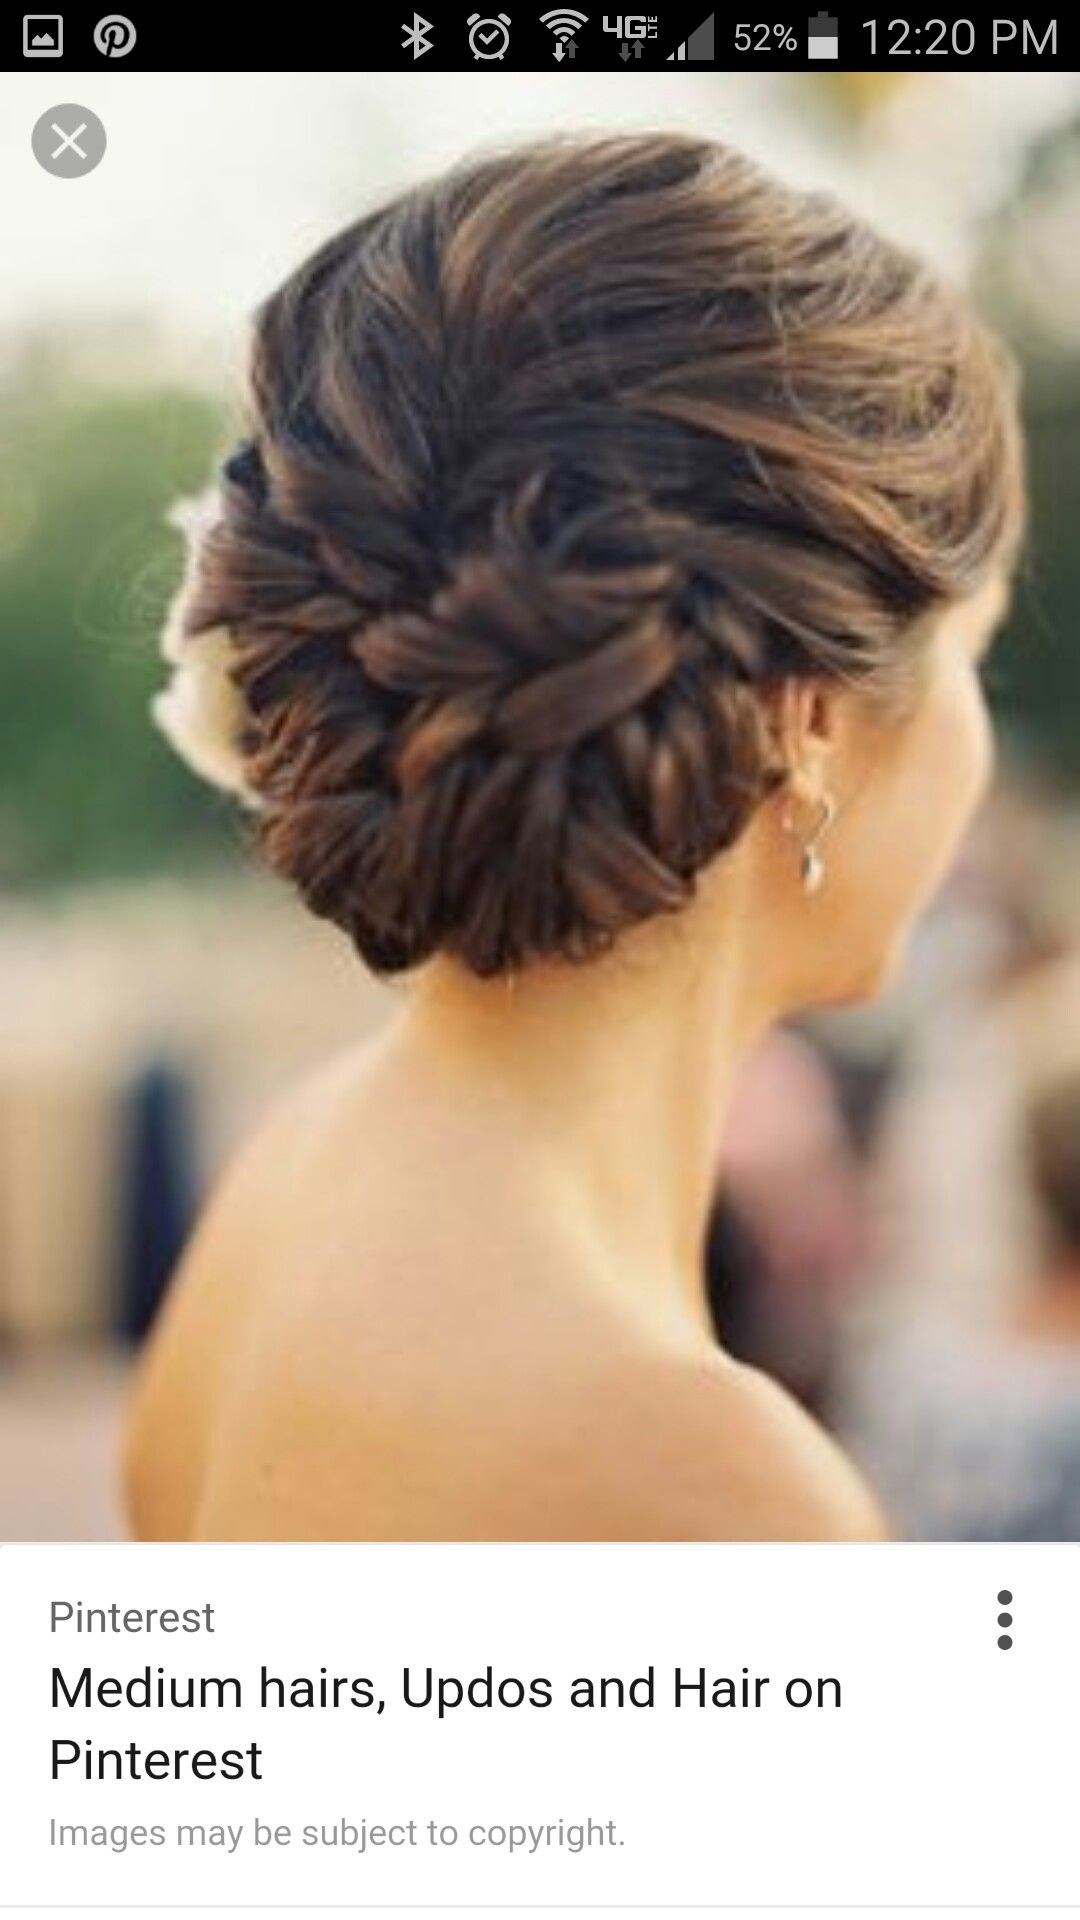 Pin by jennifer mohr on wedding hair and accessories pinterest